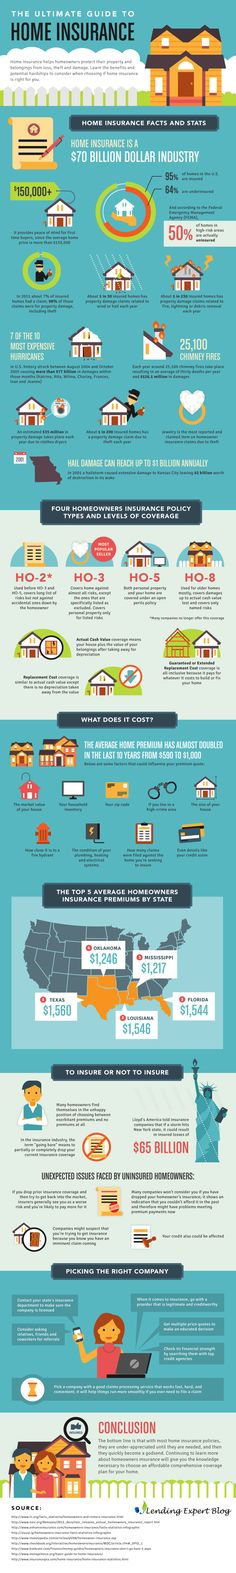 Home Insurance 101 : This infographic presents some interesting stats and facts about home insurance industry and serves as a basic guide for homeowners who need some help in choosing insurance plan and company and want to avoid involved pitfalls.	  > http://infographicsmania.com/home-insurance-101/?utm_source=Pinterest&utm_medium=ZAKKAS&utm_campaign=SNAP